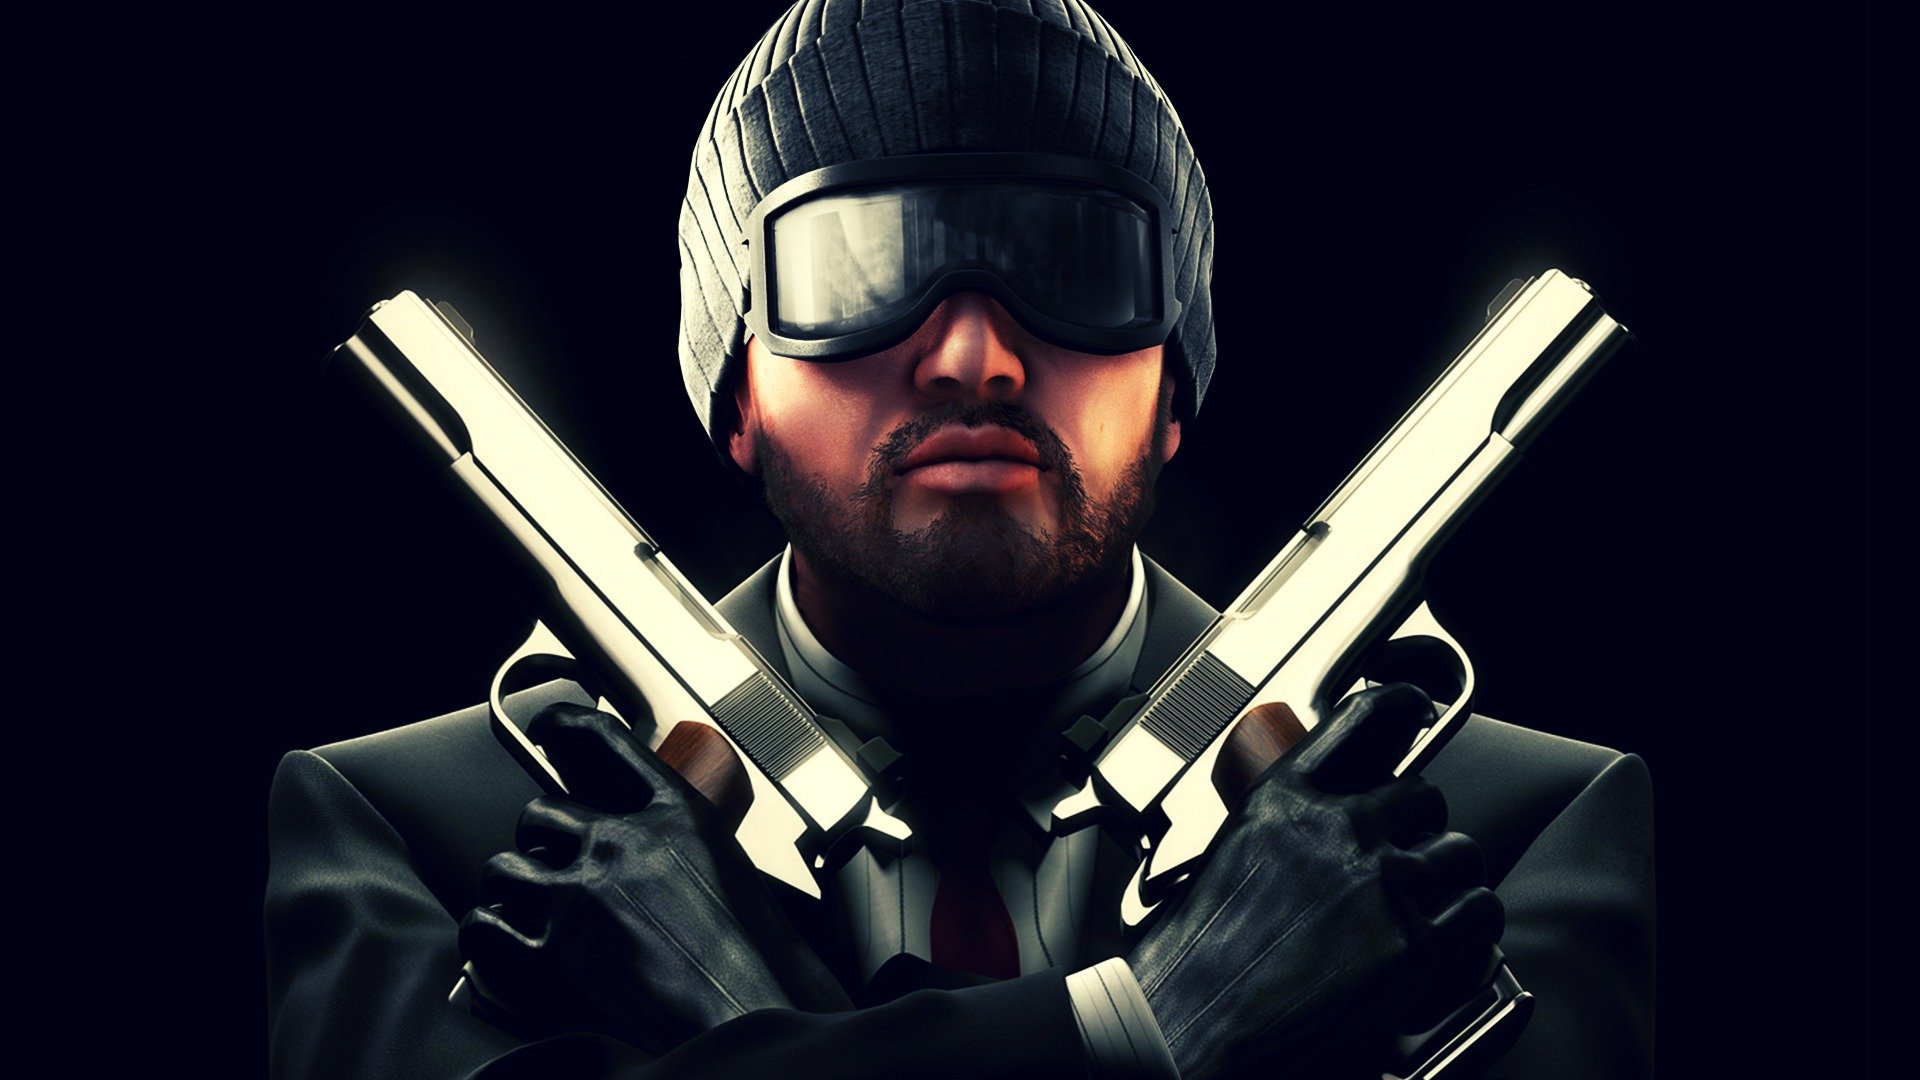 Download 1080p Point Blank desktop background ID:118780 for free